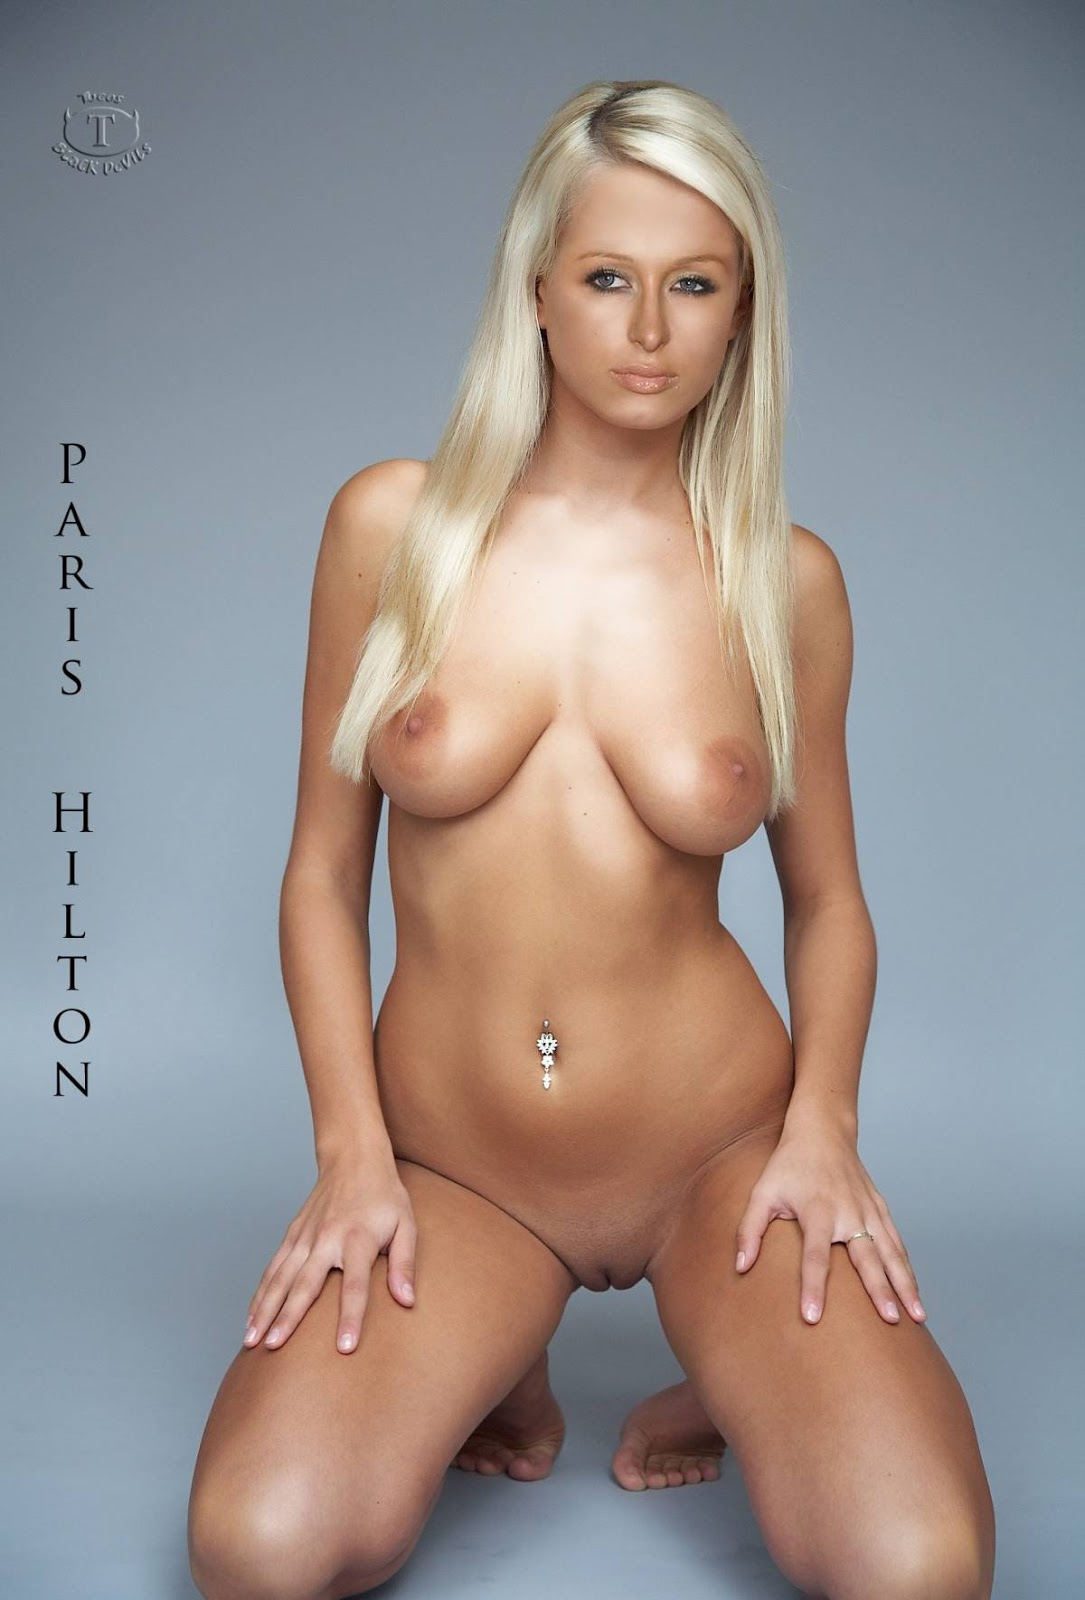 All personal Hot paris hilton nude was